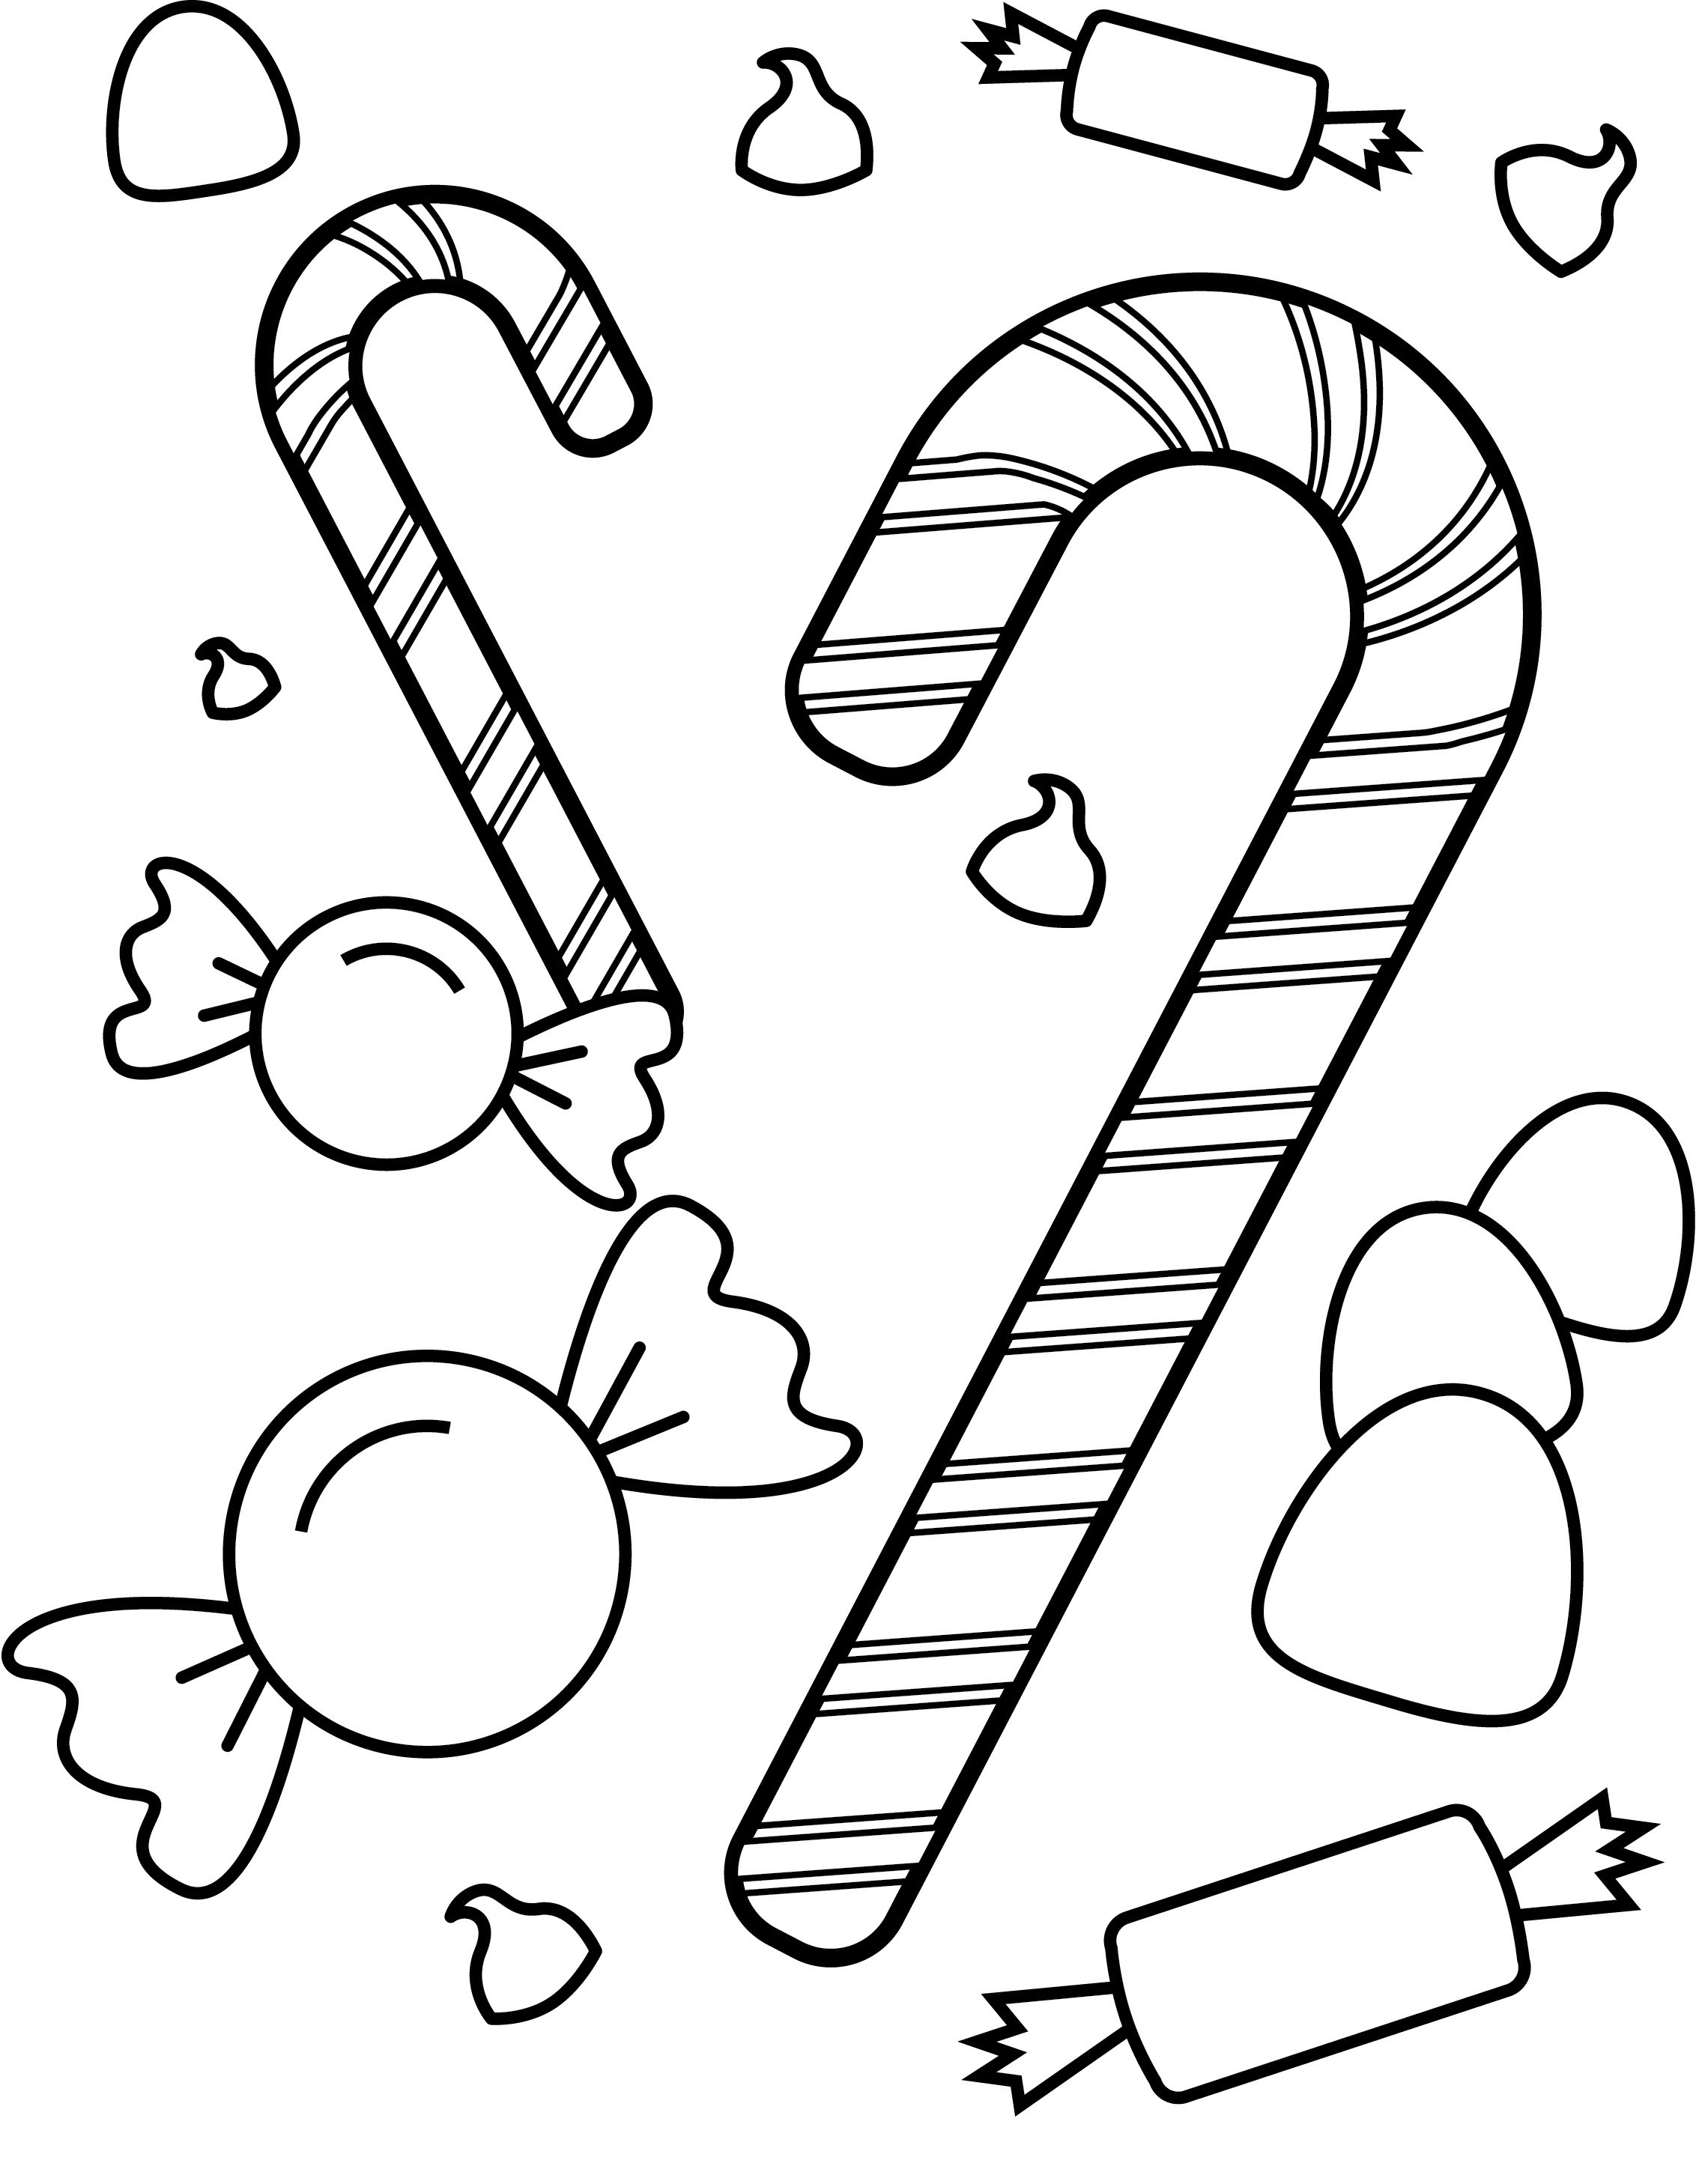 2268x2916 Christmas Sweet House Coloring Pages For Kids Best Of Free